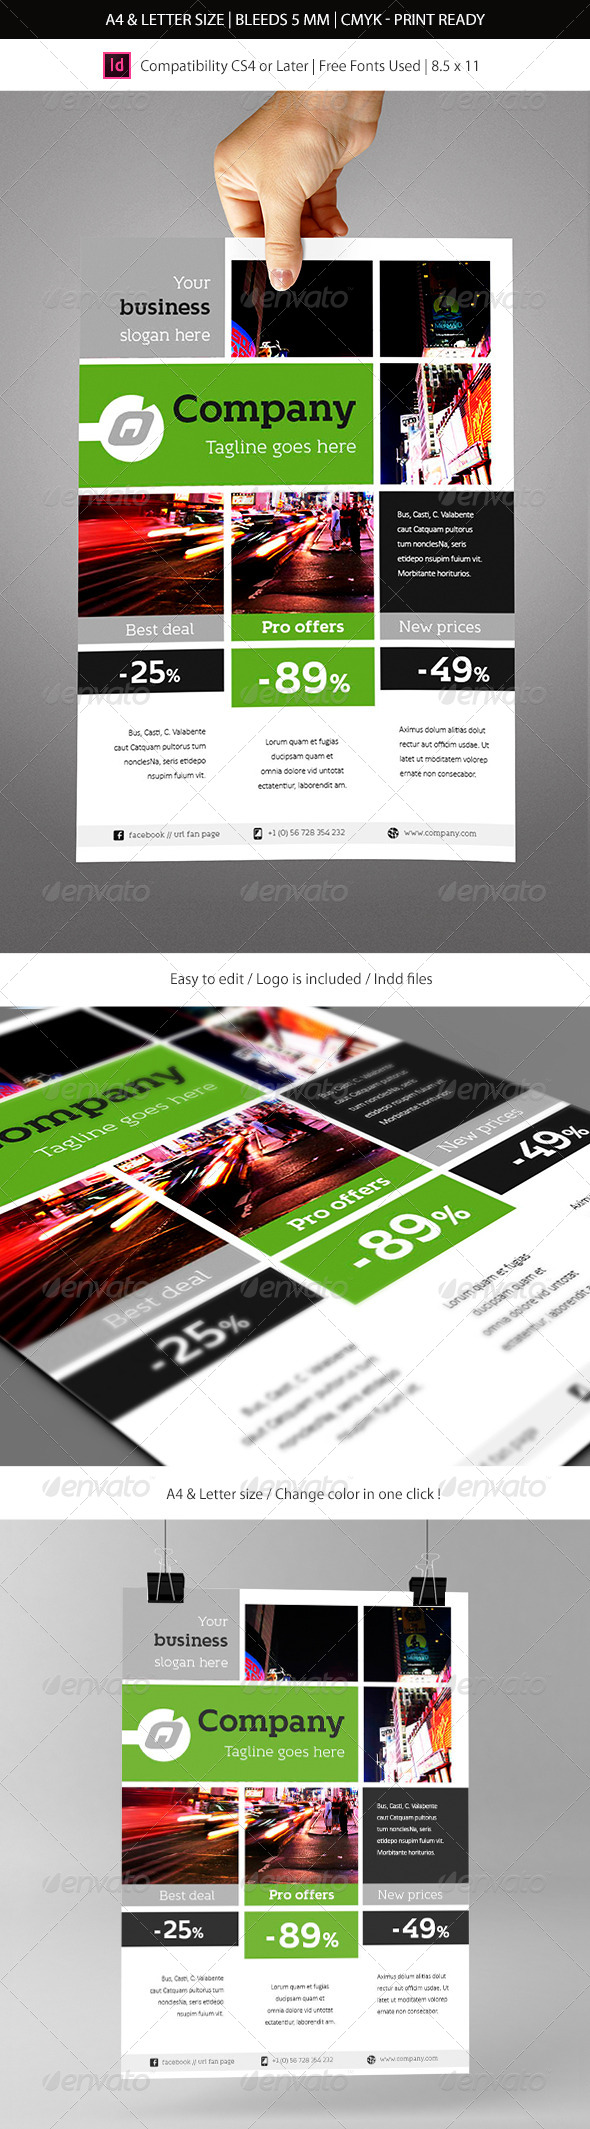 Indesign Business Flyer Template - Corporate Flyers